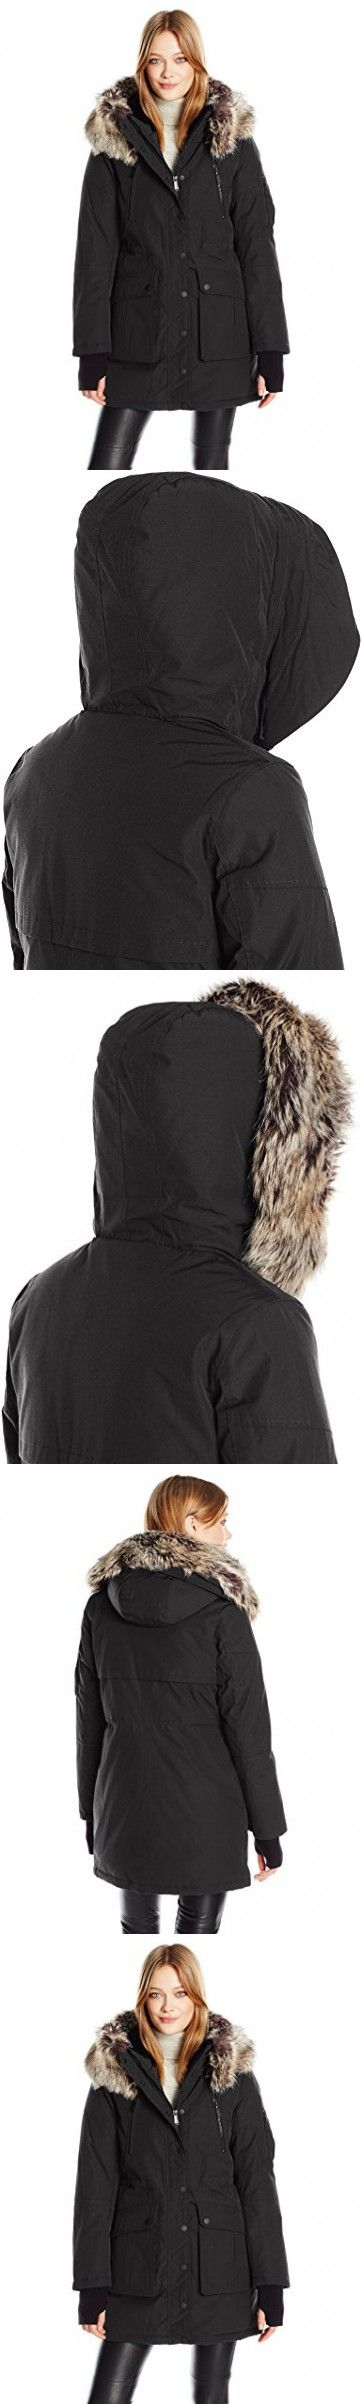 BCBGeneration Women's Parka, Black, L